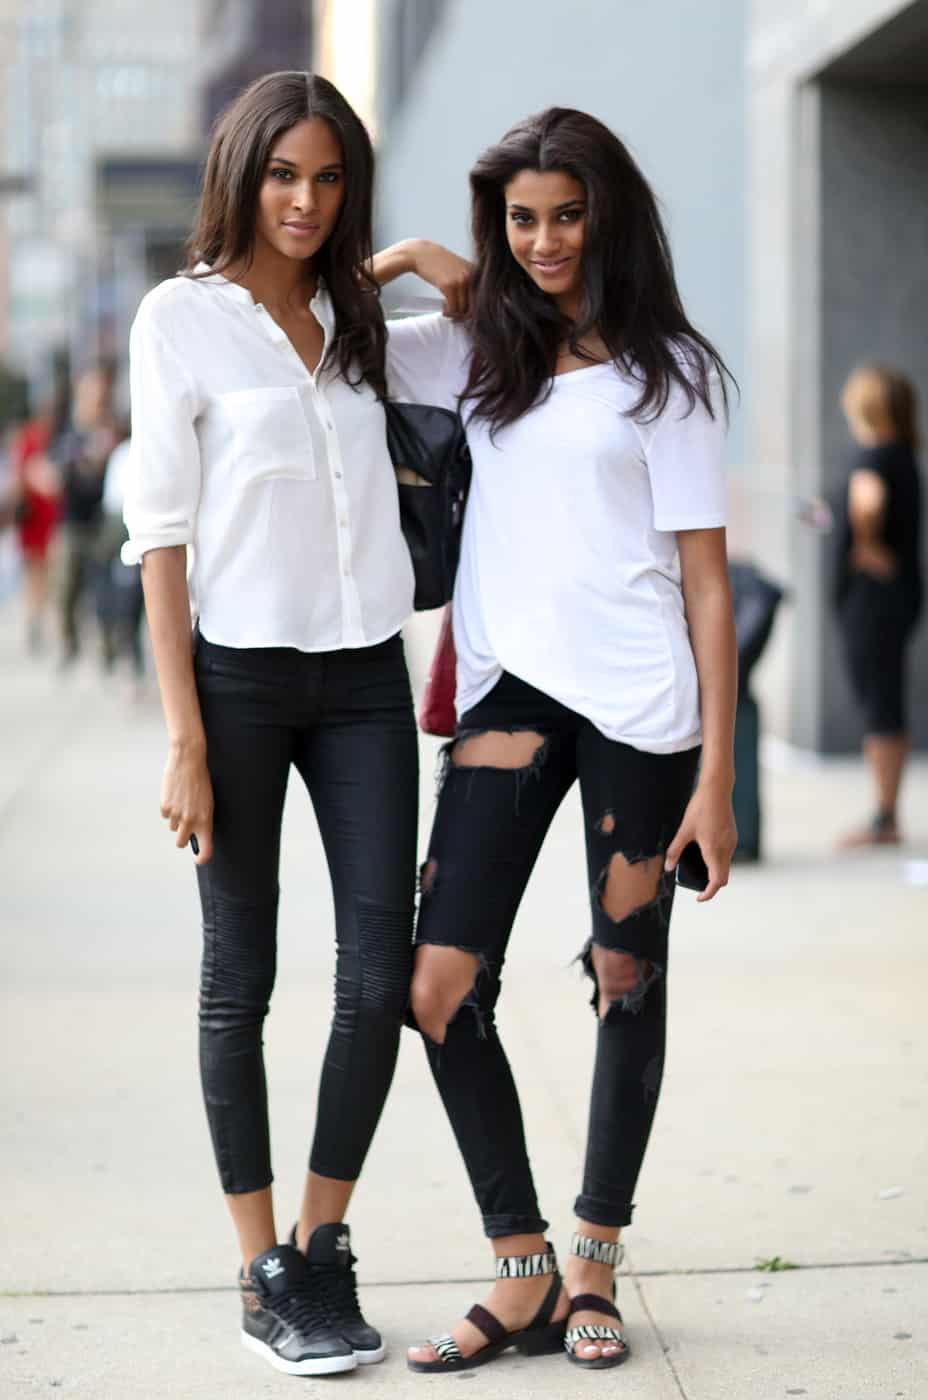 793c10ea605 5. White Top   Black Skinnies. White blouse and black skinnies concert  outfit idea